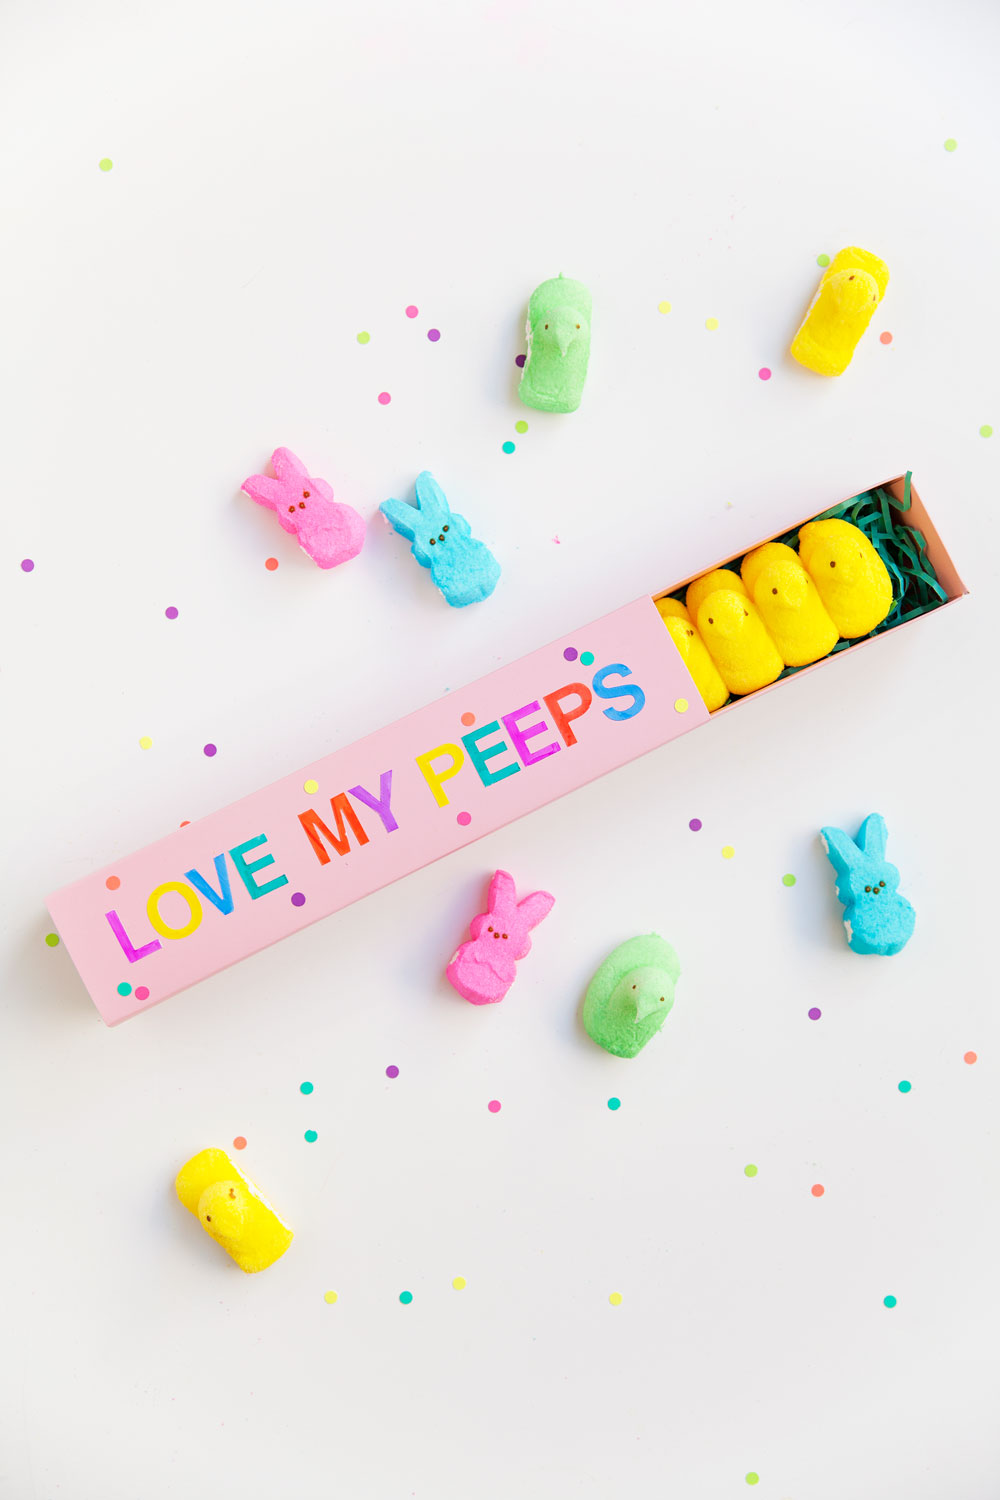 A-fun-way-to-give-peeps-this-Easter